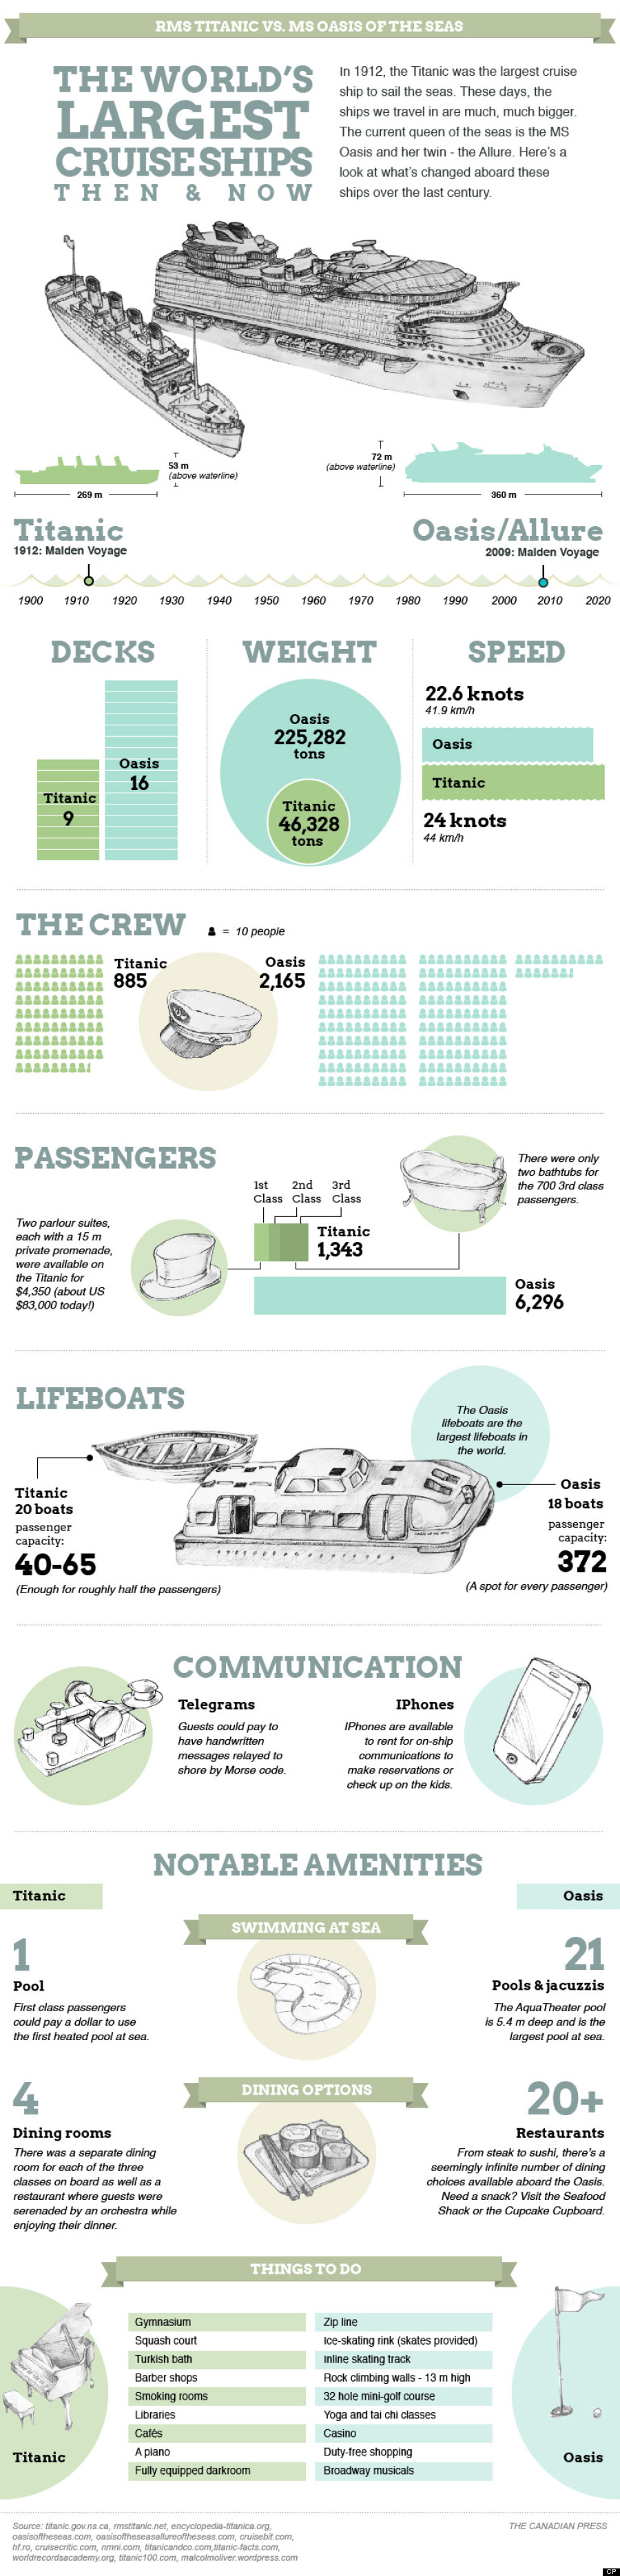 RMS Titanic vs MS Oasis Of The Seas Comparison -The World's Largest Cruise Ships 1